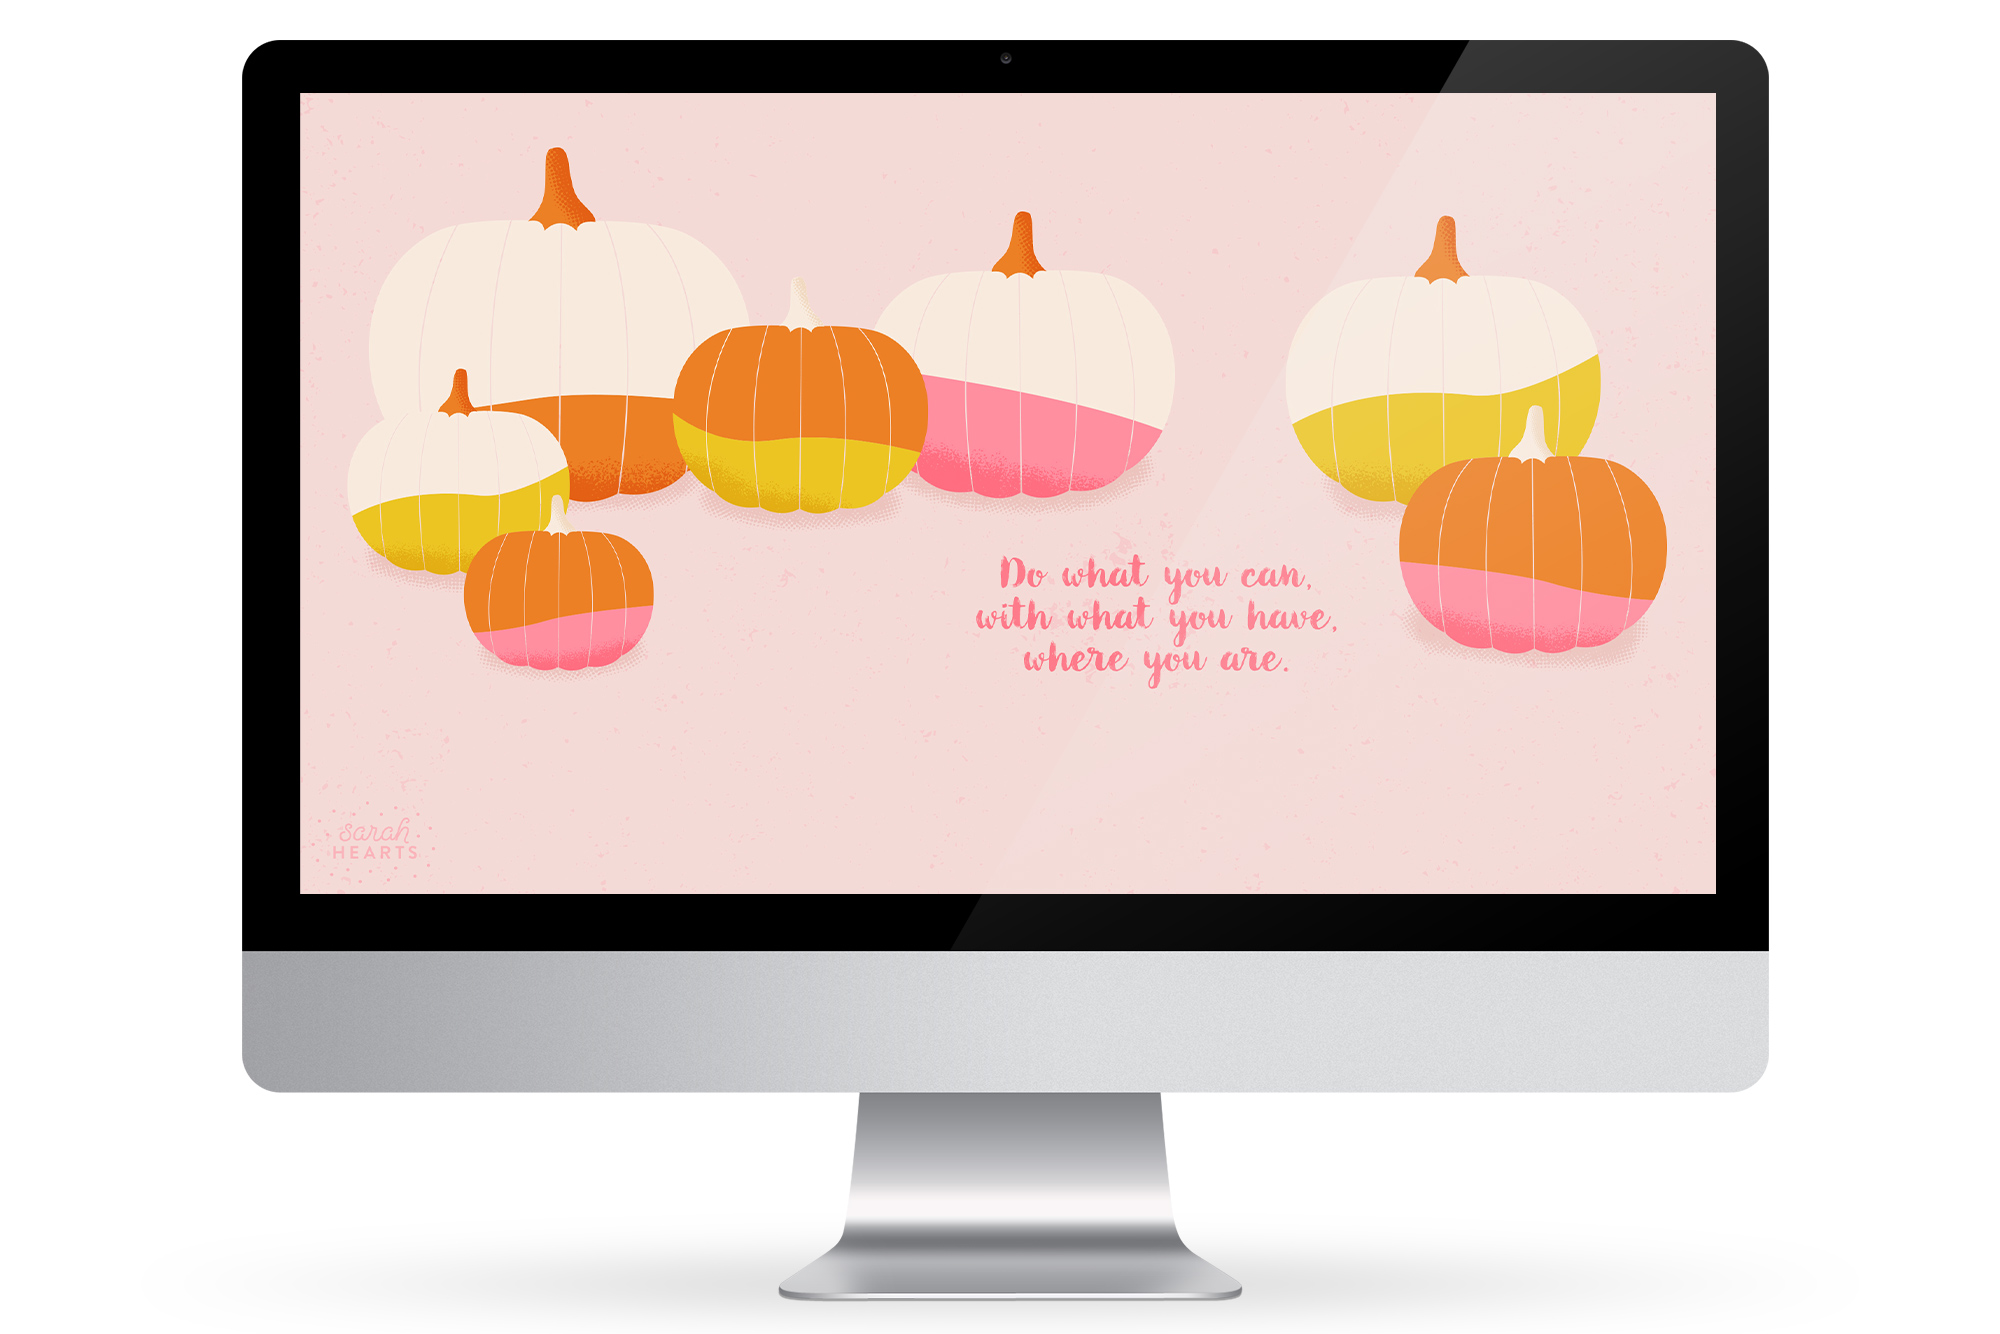 Fall is in full swing so adorn your computer, phone or tablet with this cute free pumpkin wallpaper. Available with a November 2015 calendar, an inspirational quote or just pumpkins!